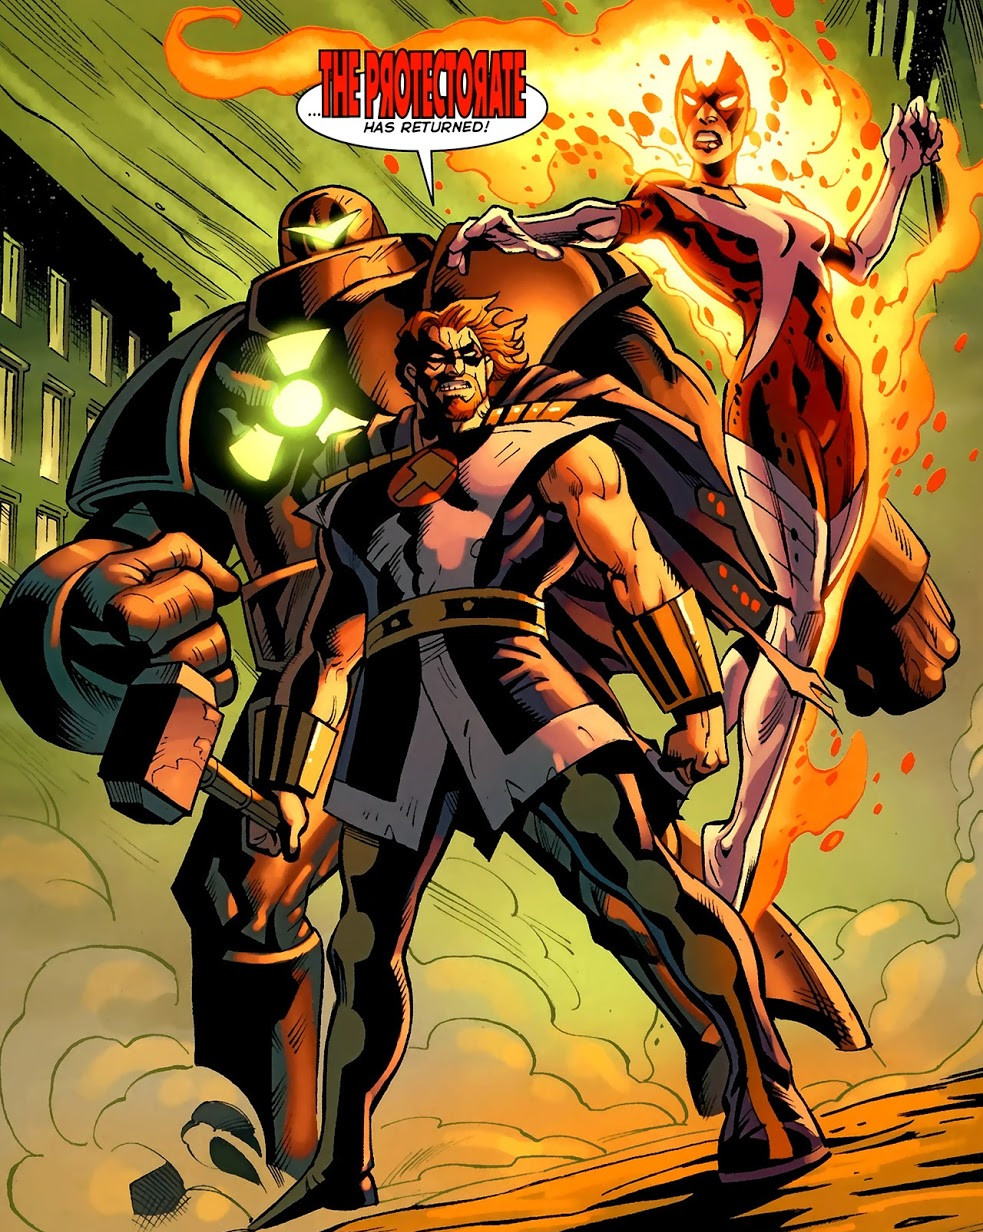 Protectorate (Earth-616)/Gallery